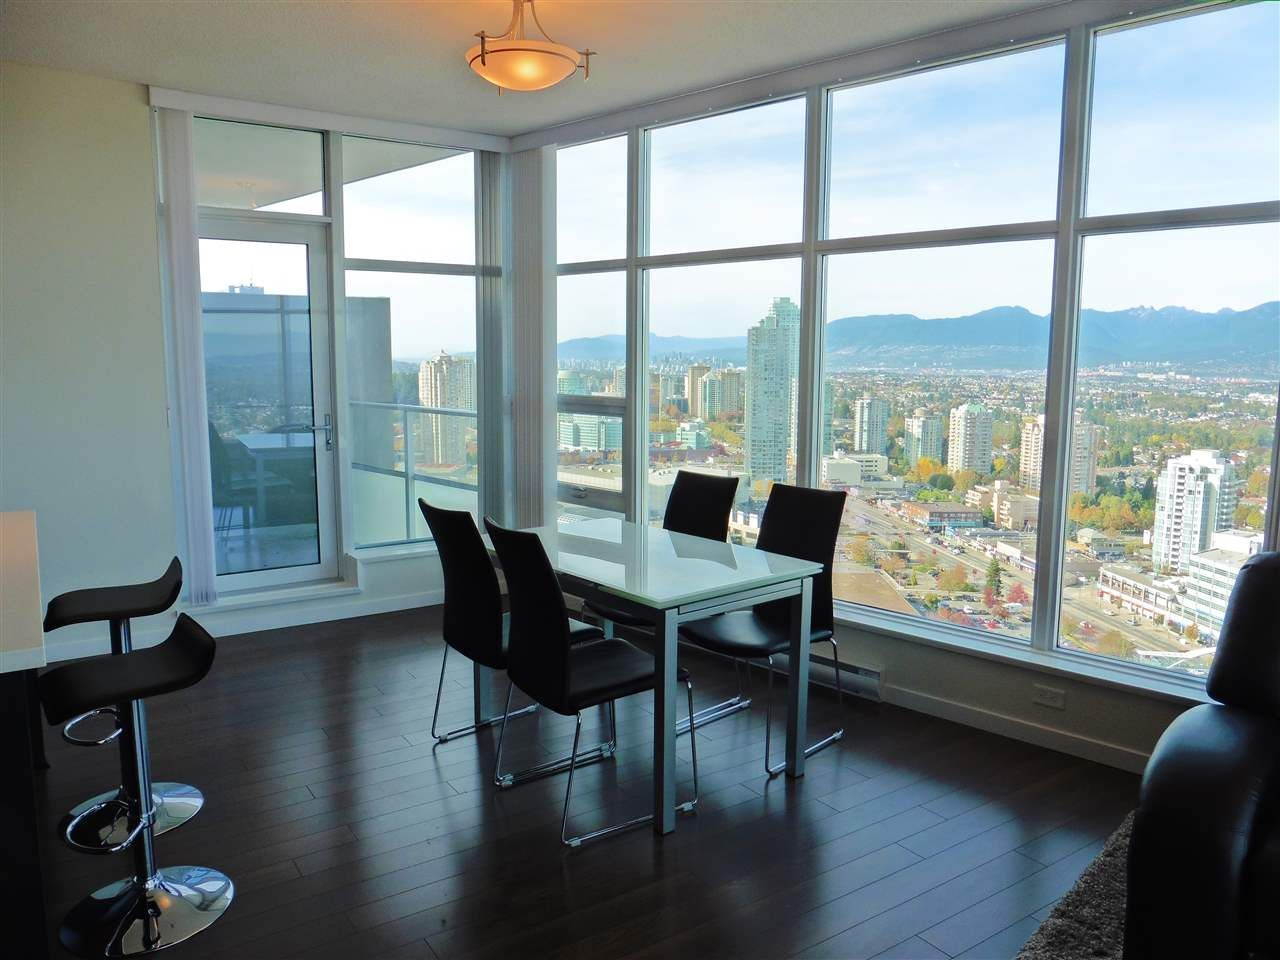 """Photo 3: Photos: 3702 4880 BENNETT Street in Burnaby: Metrotown Condo for sale in """"CHANCELLOR"""" (Burnaby South)  : MLS®# R2006395"""